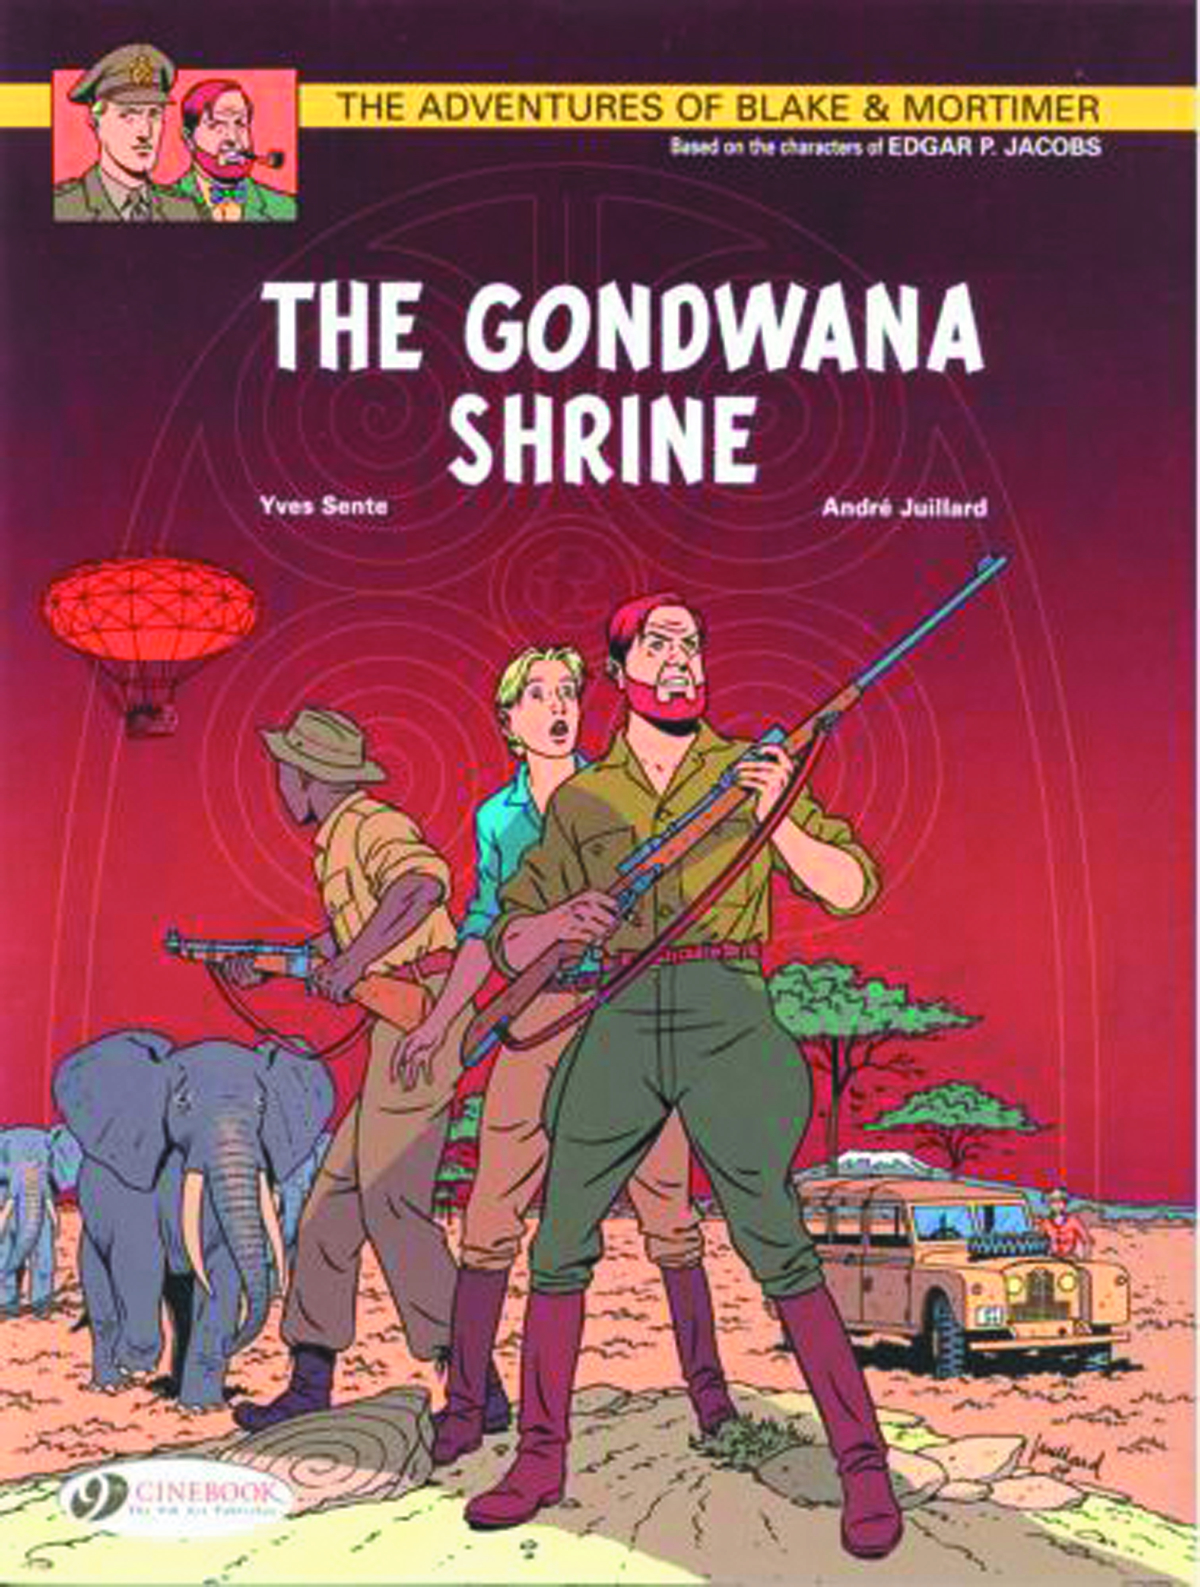 BLAKE & MORTIMER GN VOL 11 GONDWANA SHRINE